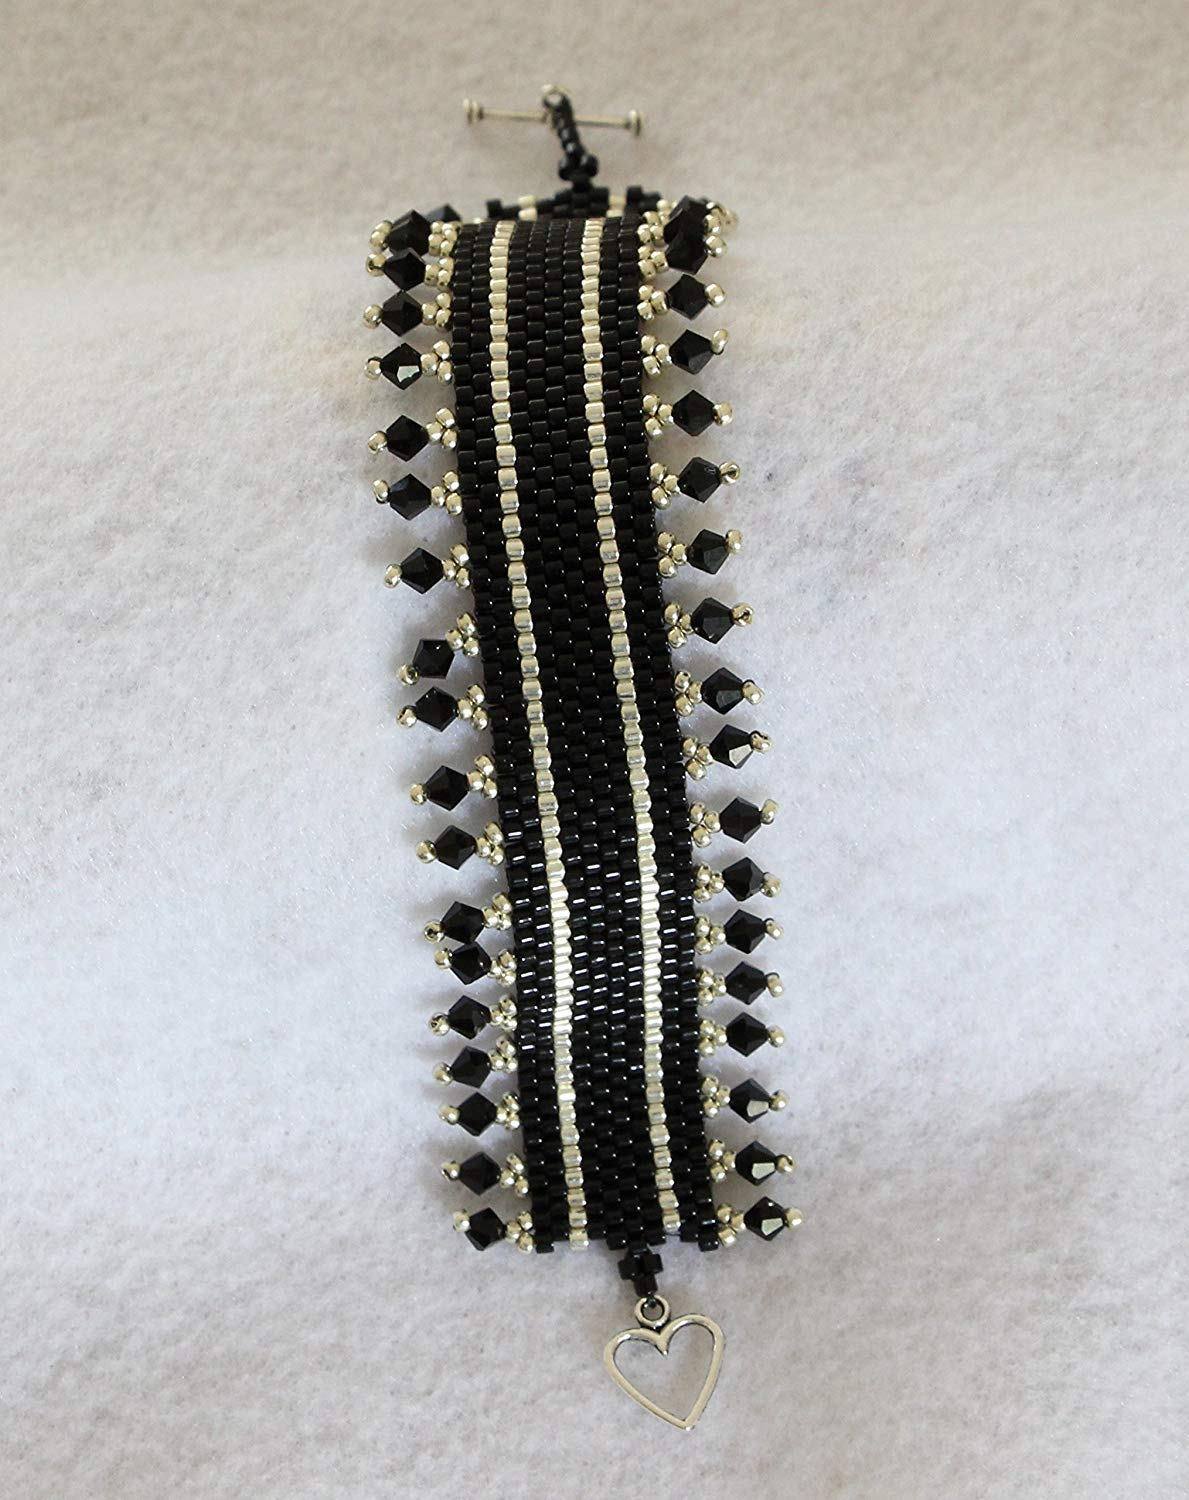 1166. Bead woven bracelet in silver and black glass beads with Swaroski crystal border and a toggle clasp.